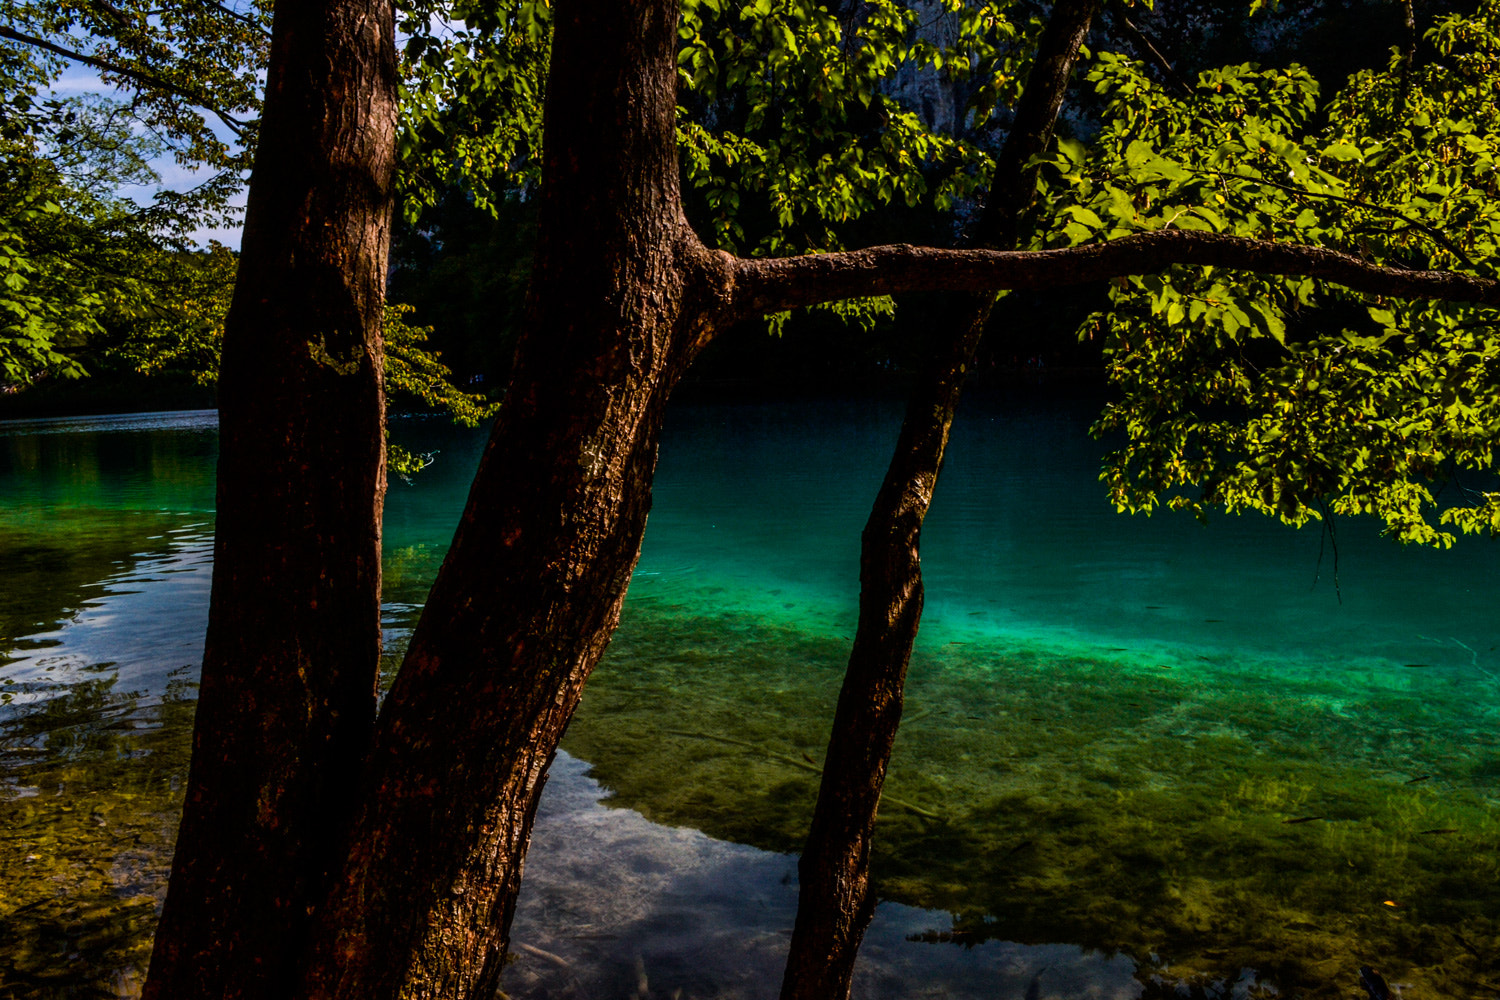 Photograph Croatia, Plitvice lakes. by LH Padovan on 500px